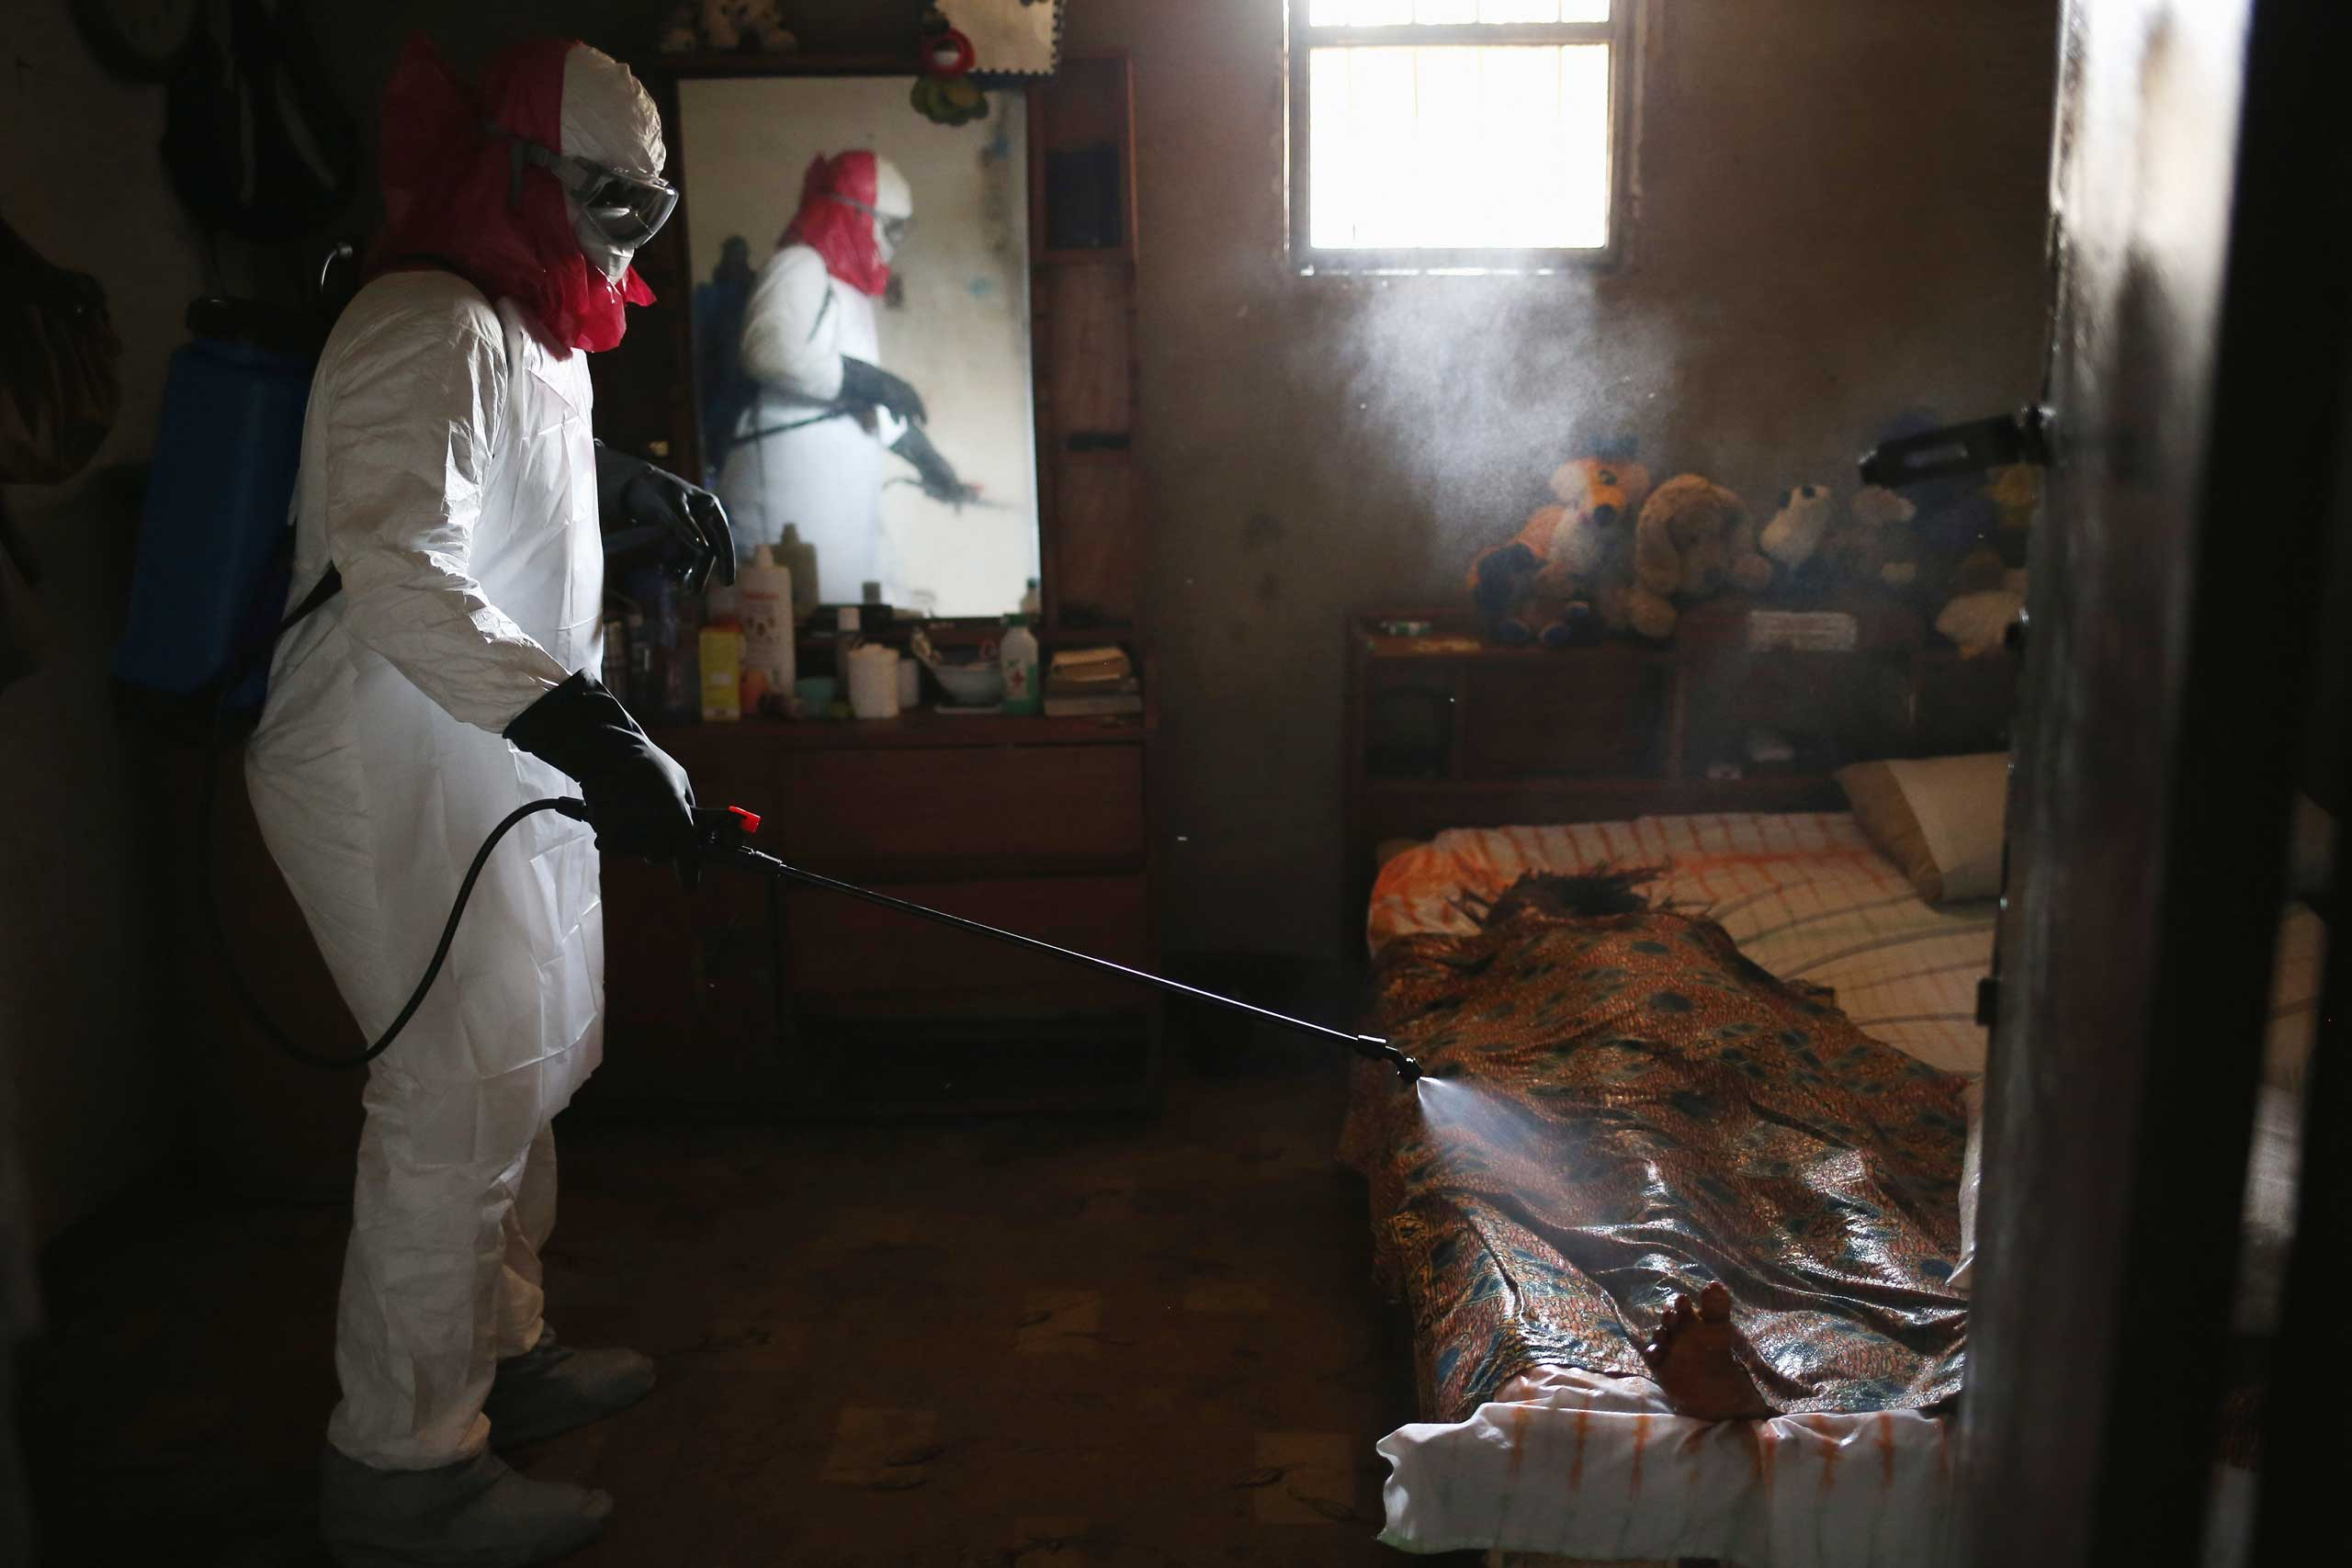 BBC Radio 4 World at One: Interview with John Moore about his Ebola coverage in LiberiaA burial team from the Liberian health department sprays disinfectant over the body of a woman suspected of dying of the Ebola virus on Aug. 14, 2014 in Monrovia.